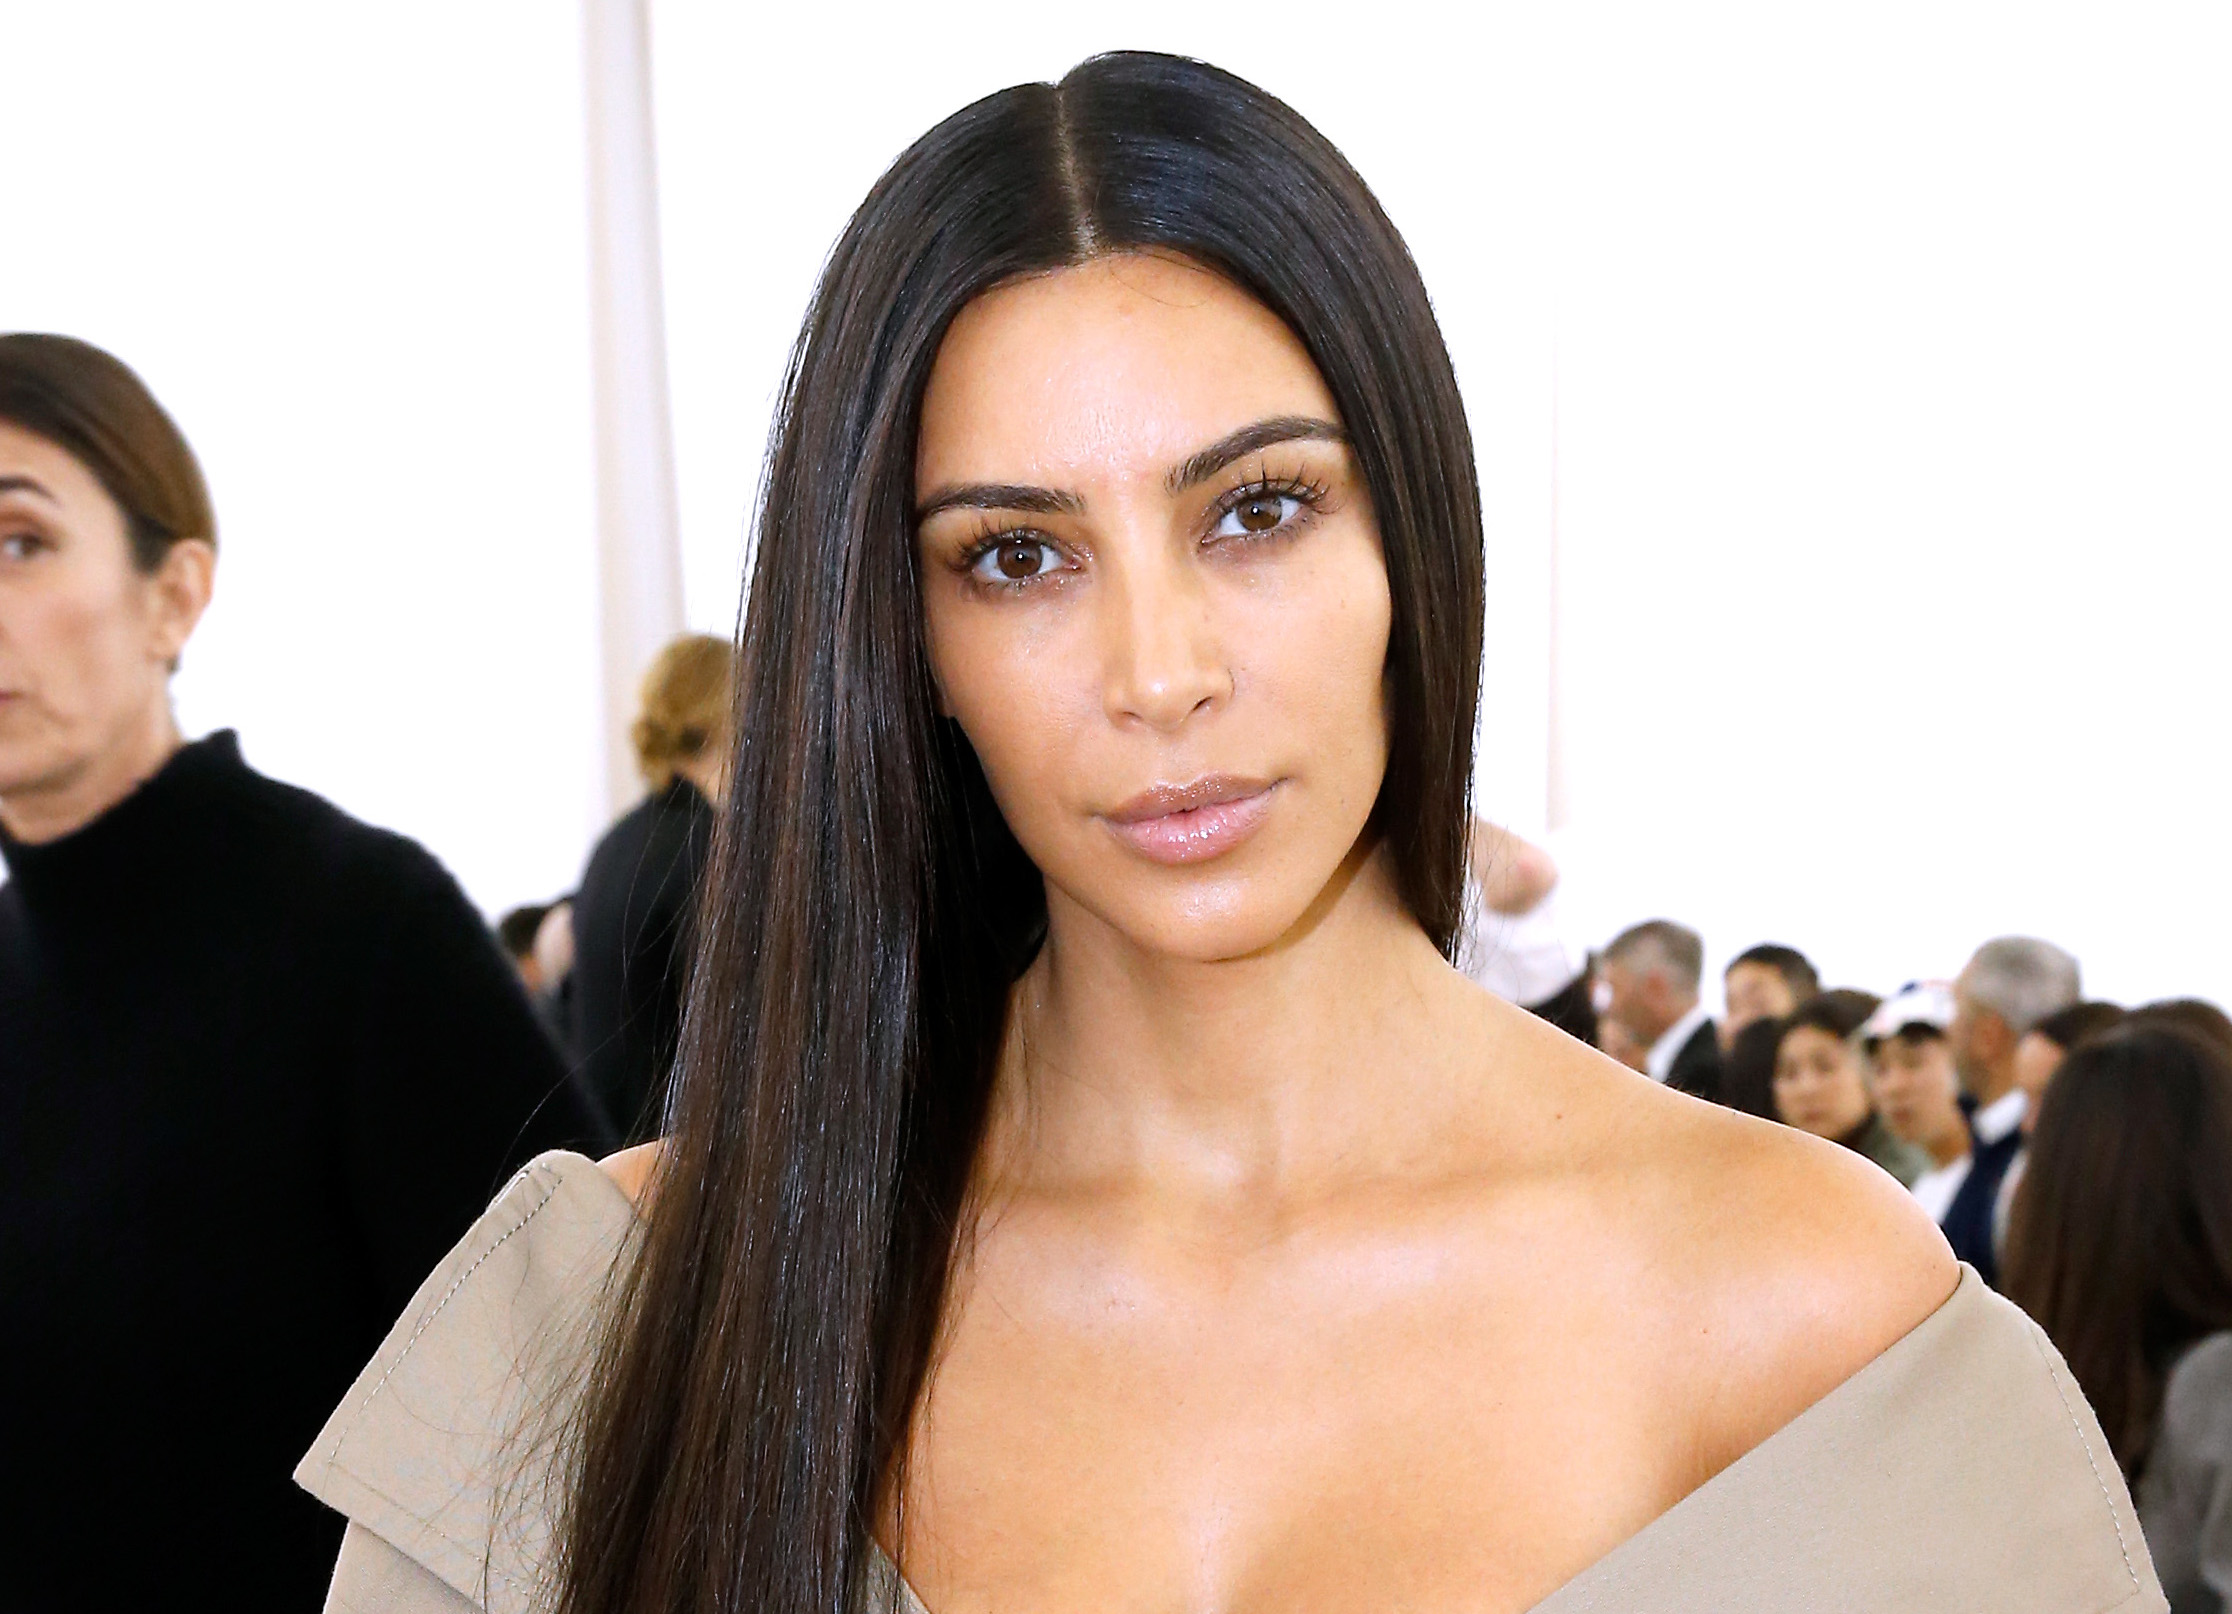 Why it's important Kim Kardashian admitted she has anxiety